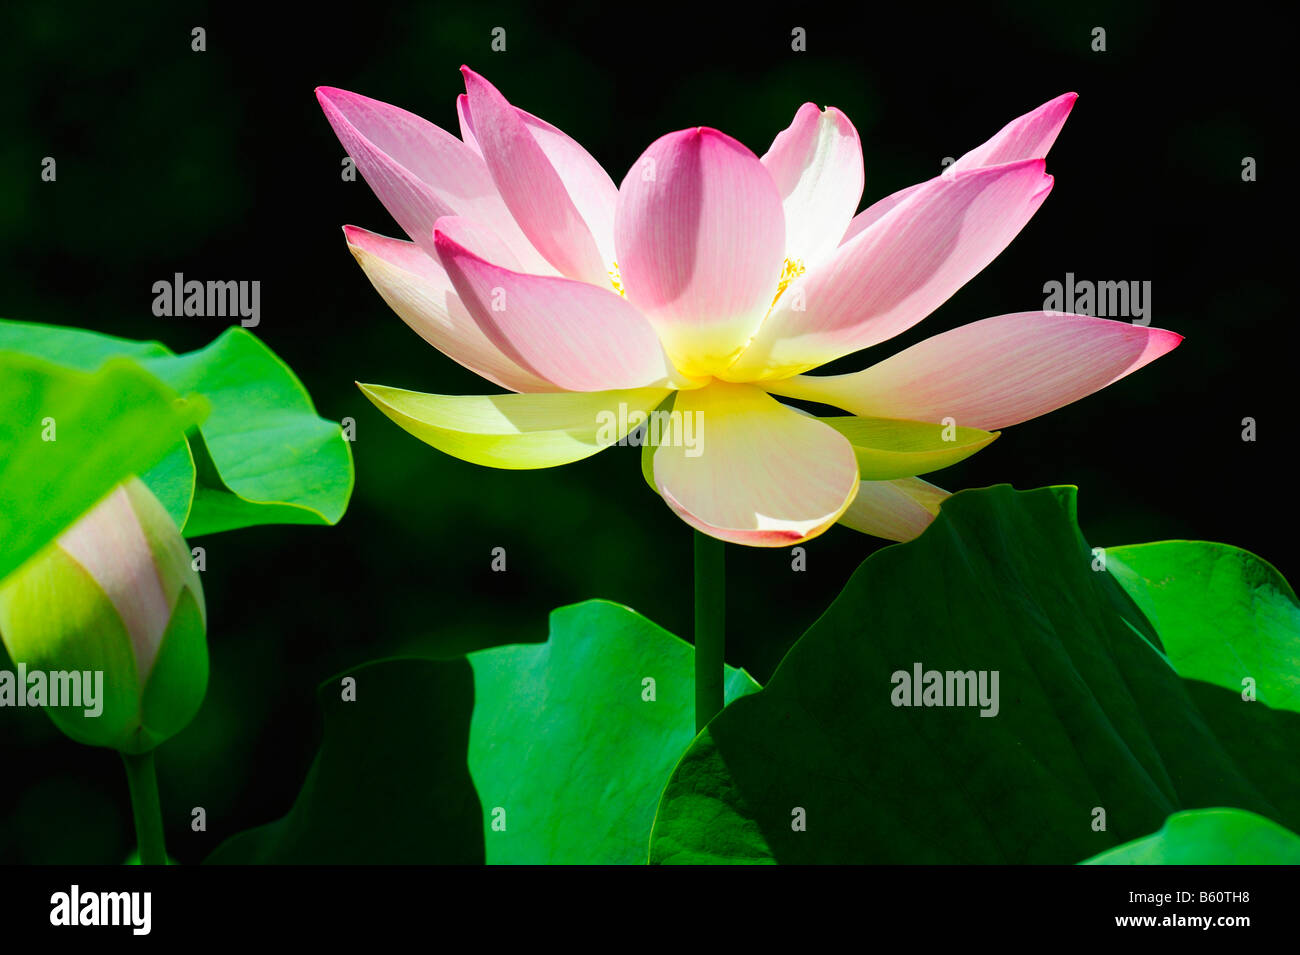 Open lotus nelumbo flower stock photo 20917604 alamy open lotus nelumbo flower izmirmasajfo